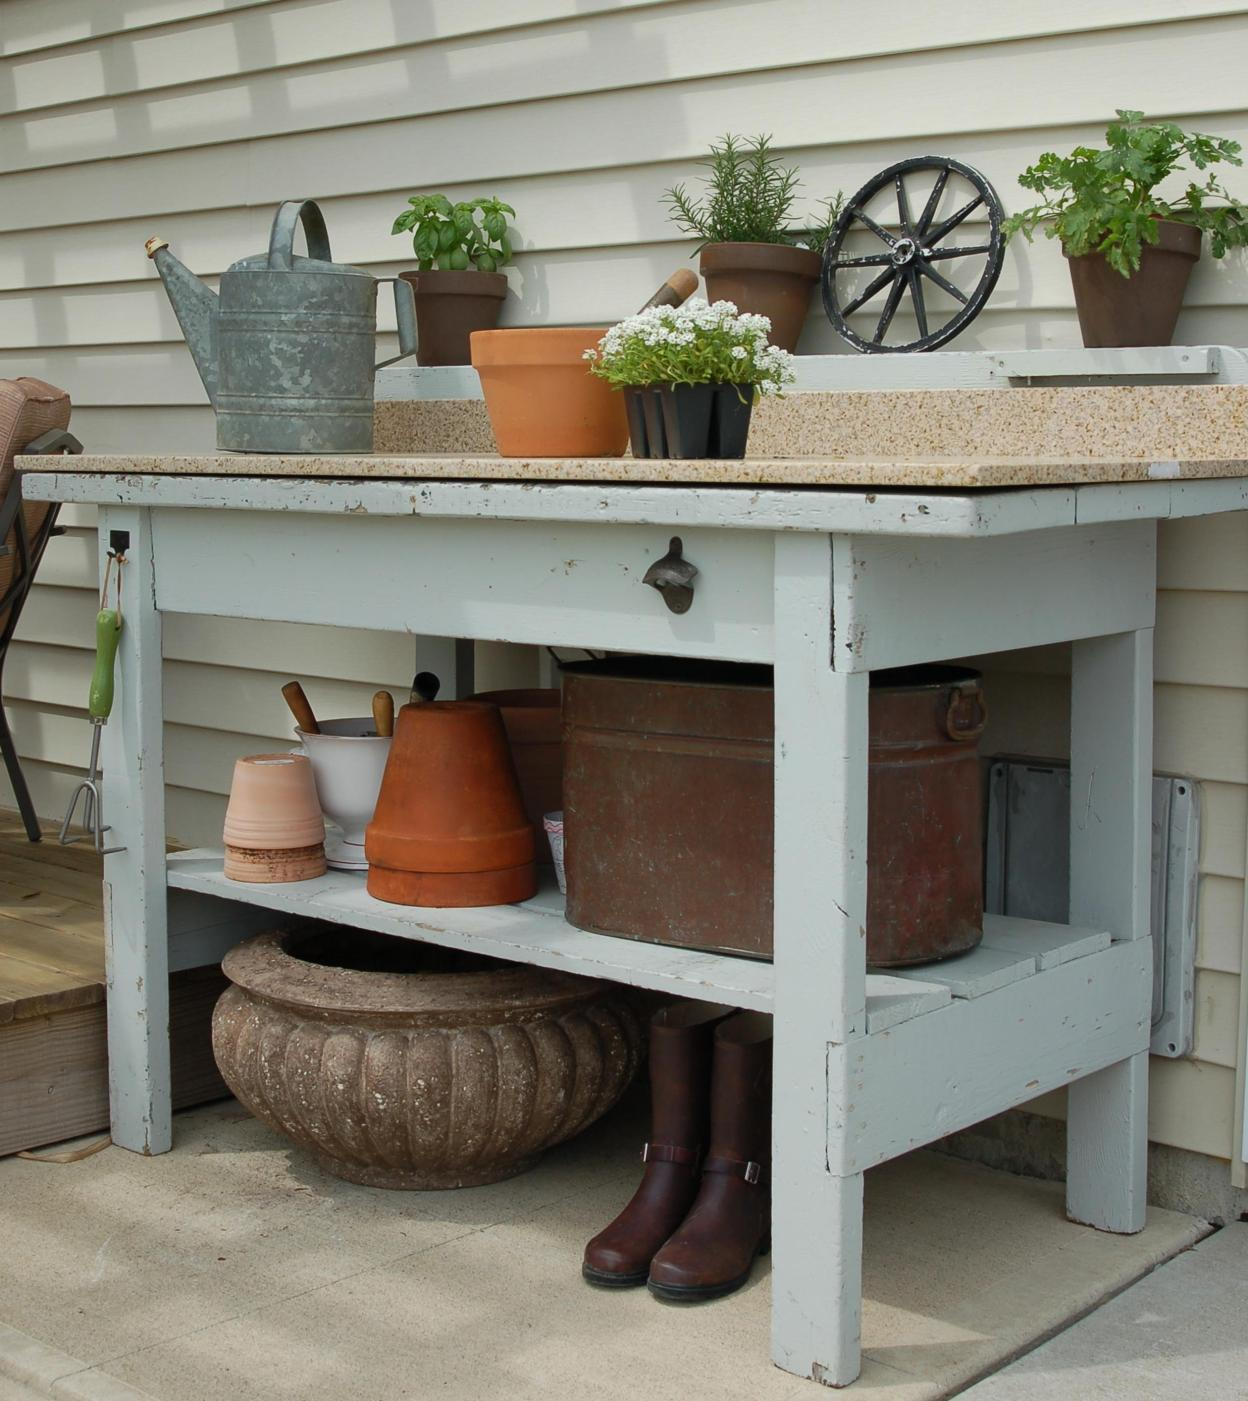 Outdoor Garden Potting Bench Design Ideas 2